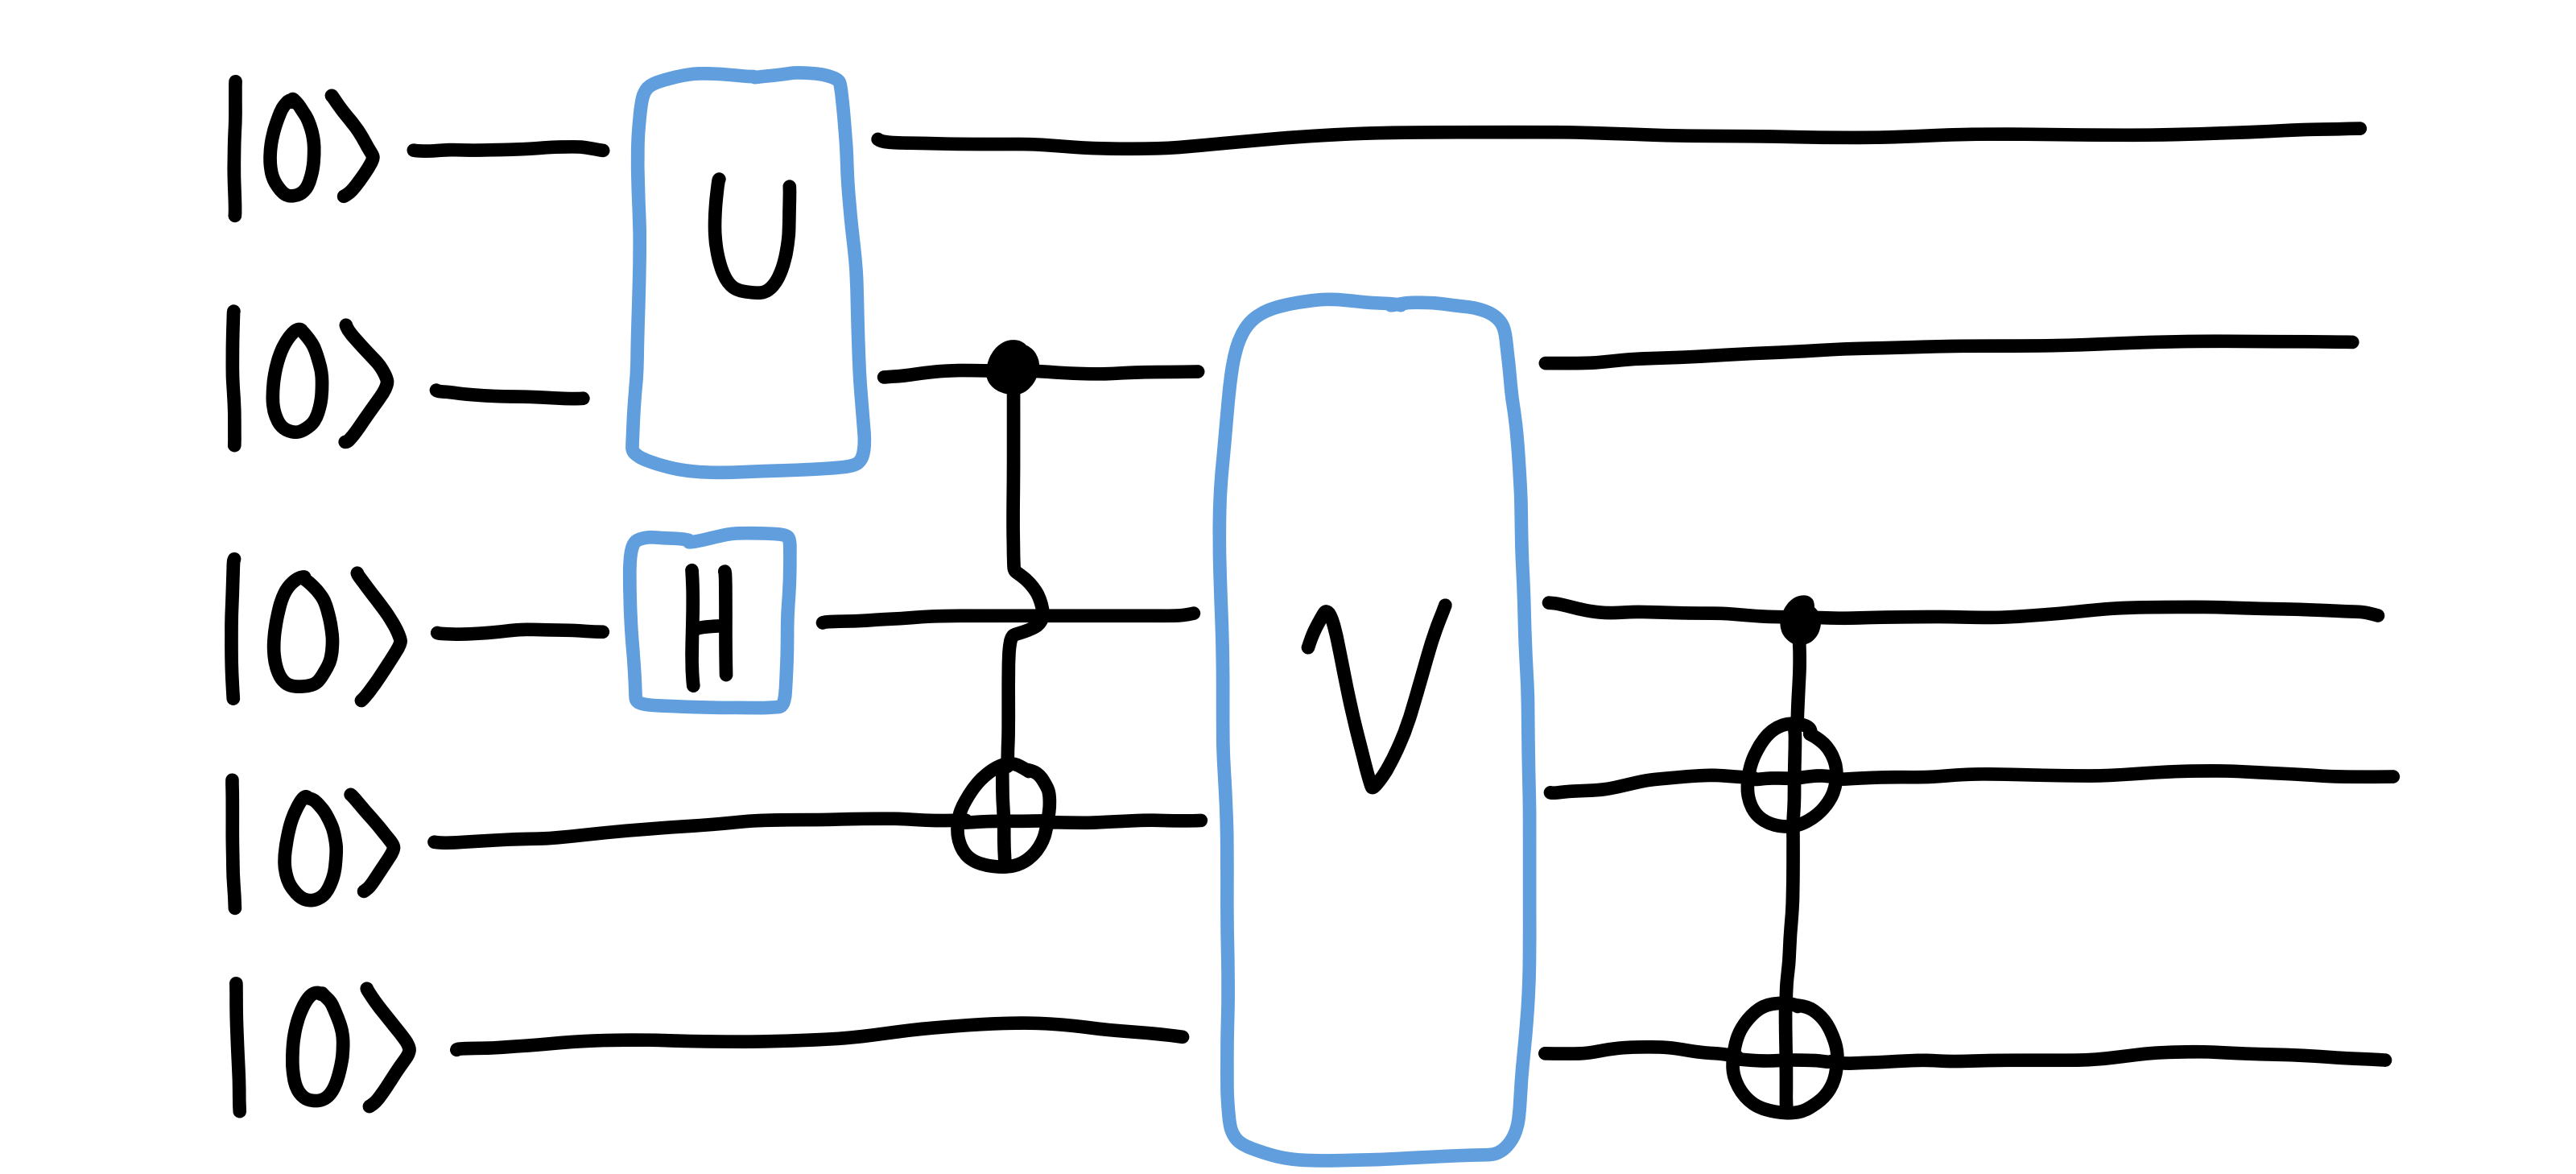 An example quantum circuit